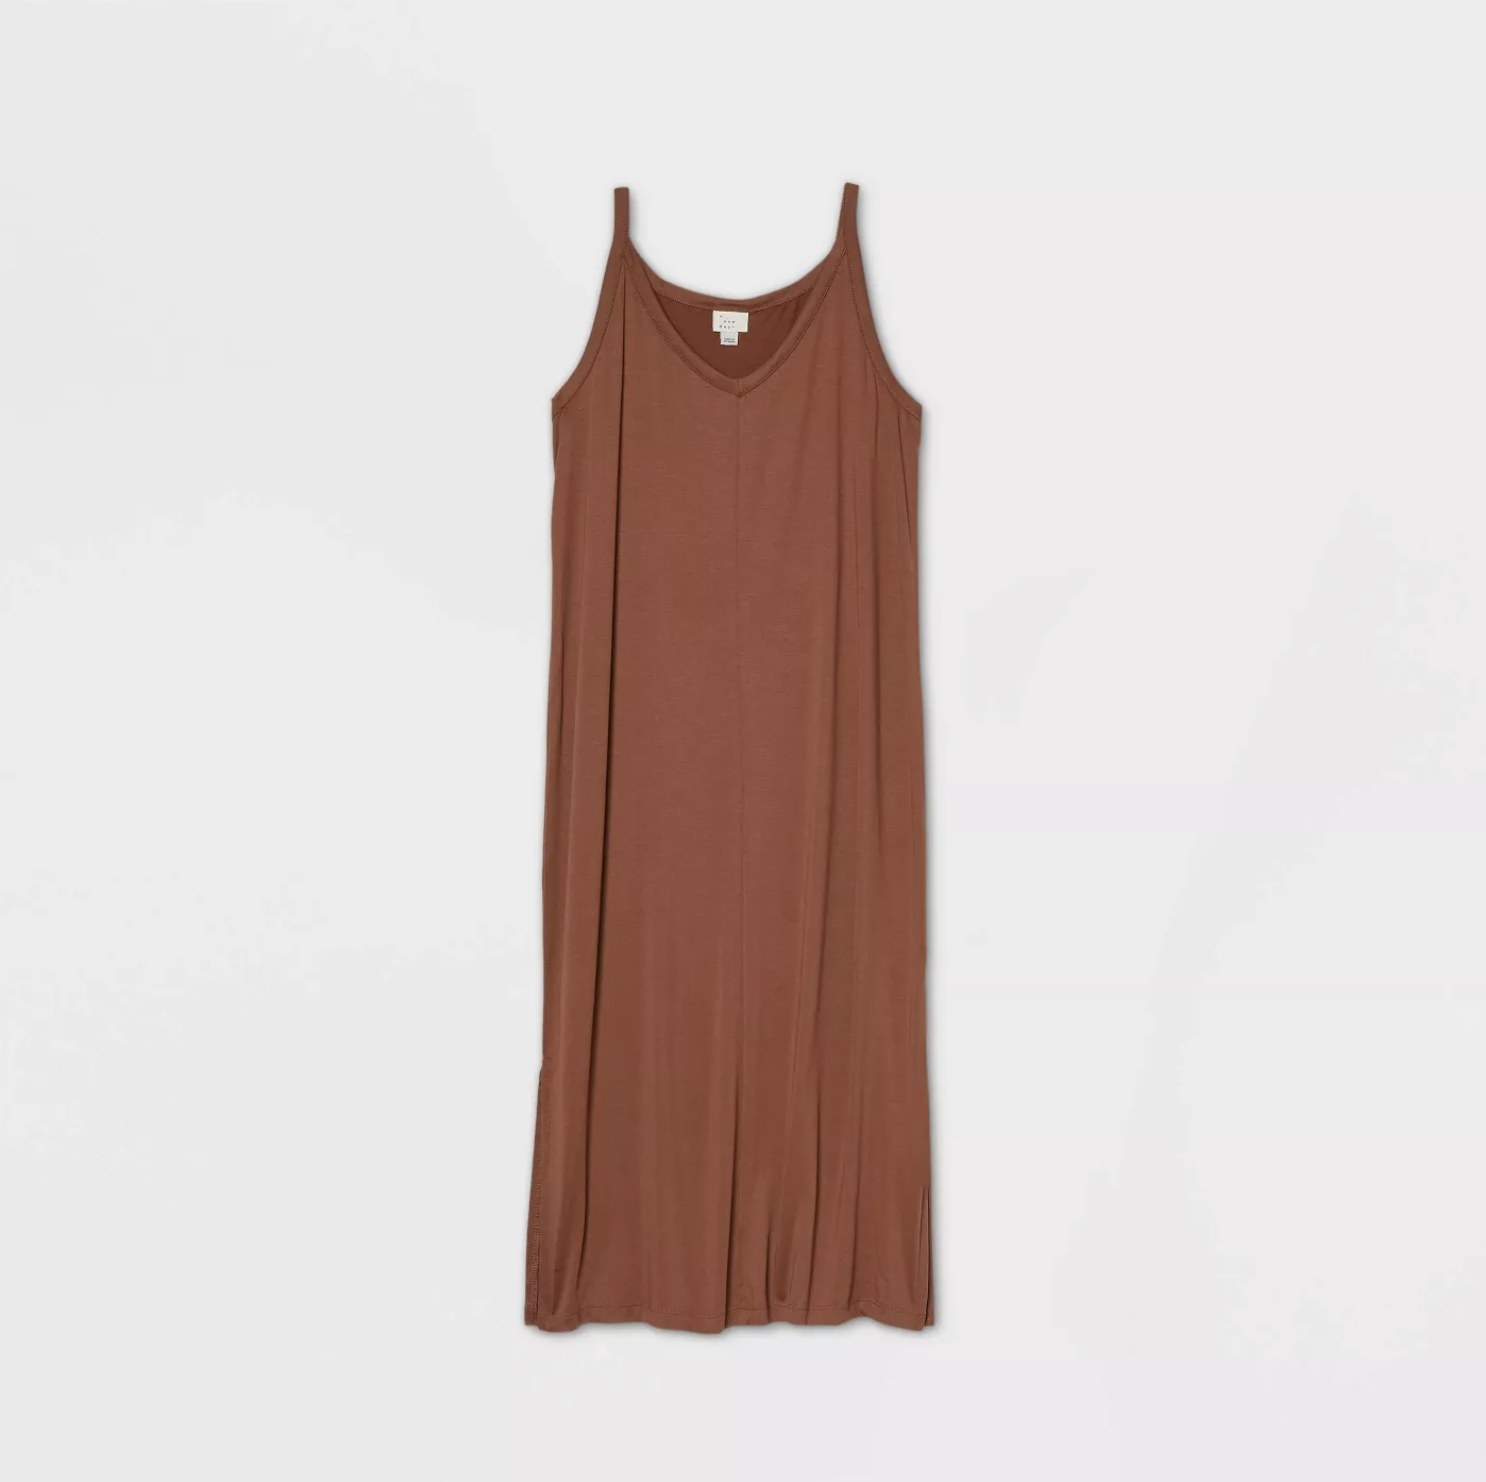 A rust sleeveless knit tank dress with a v-neckline